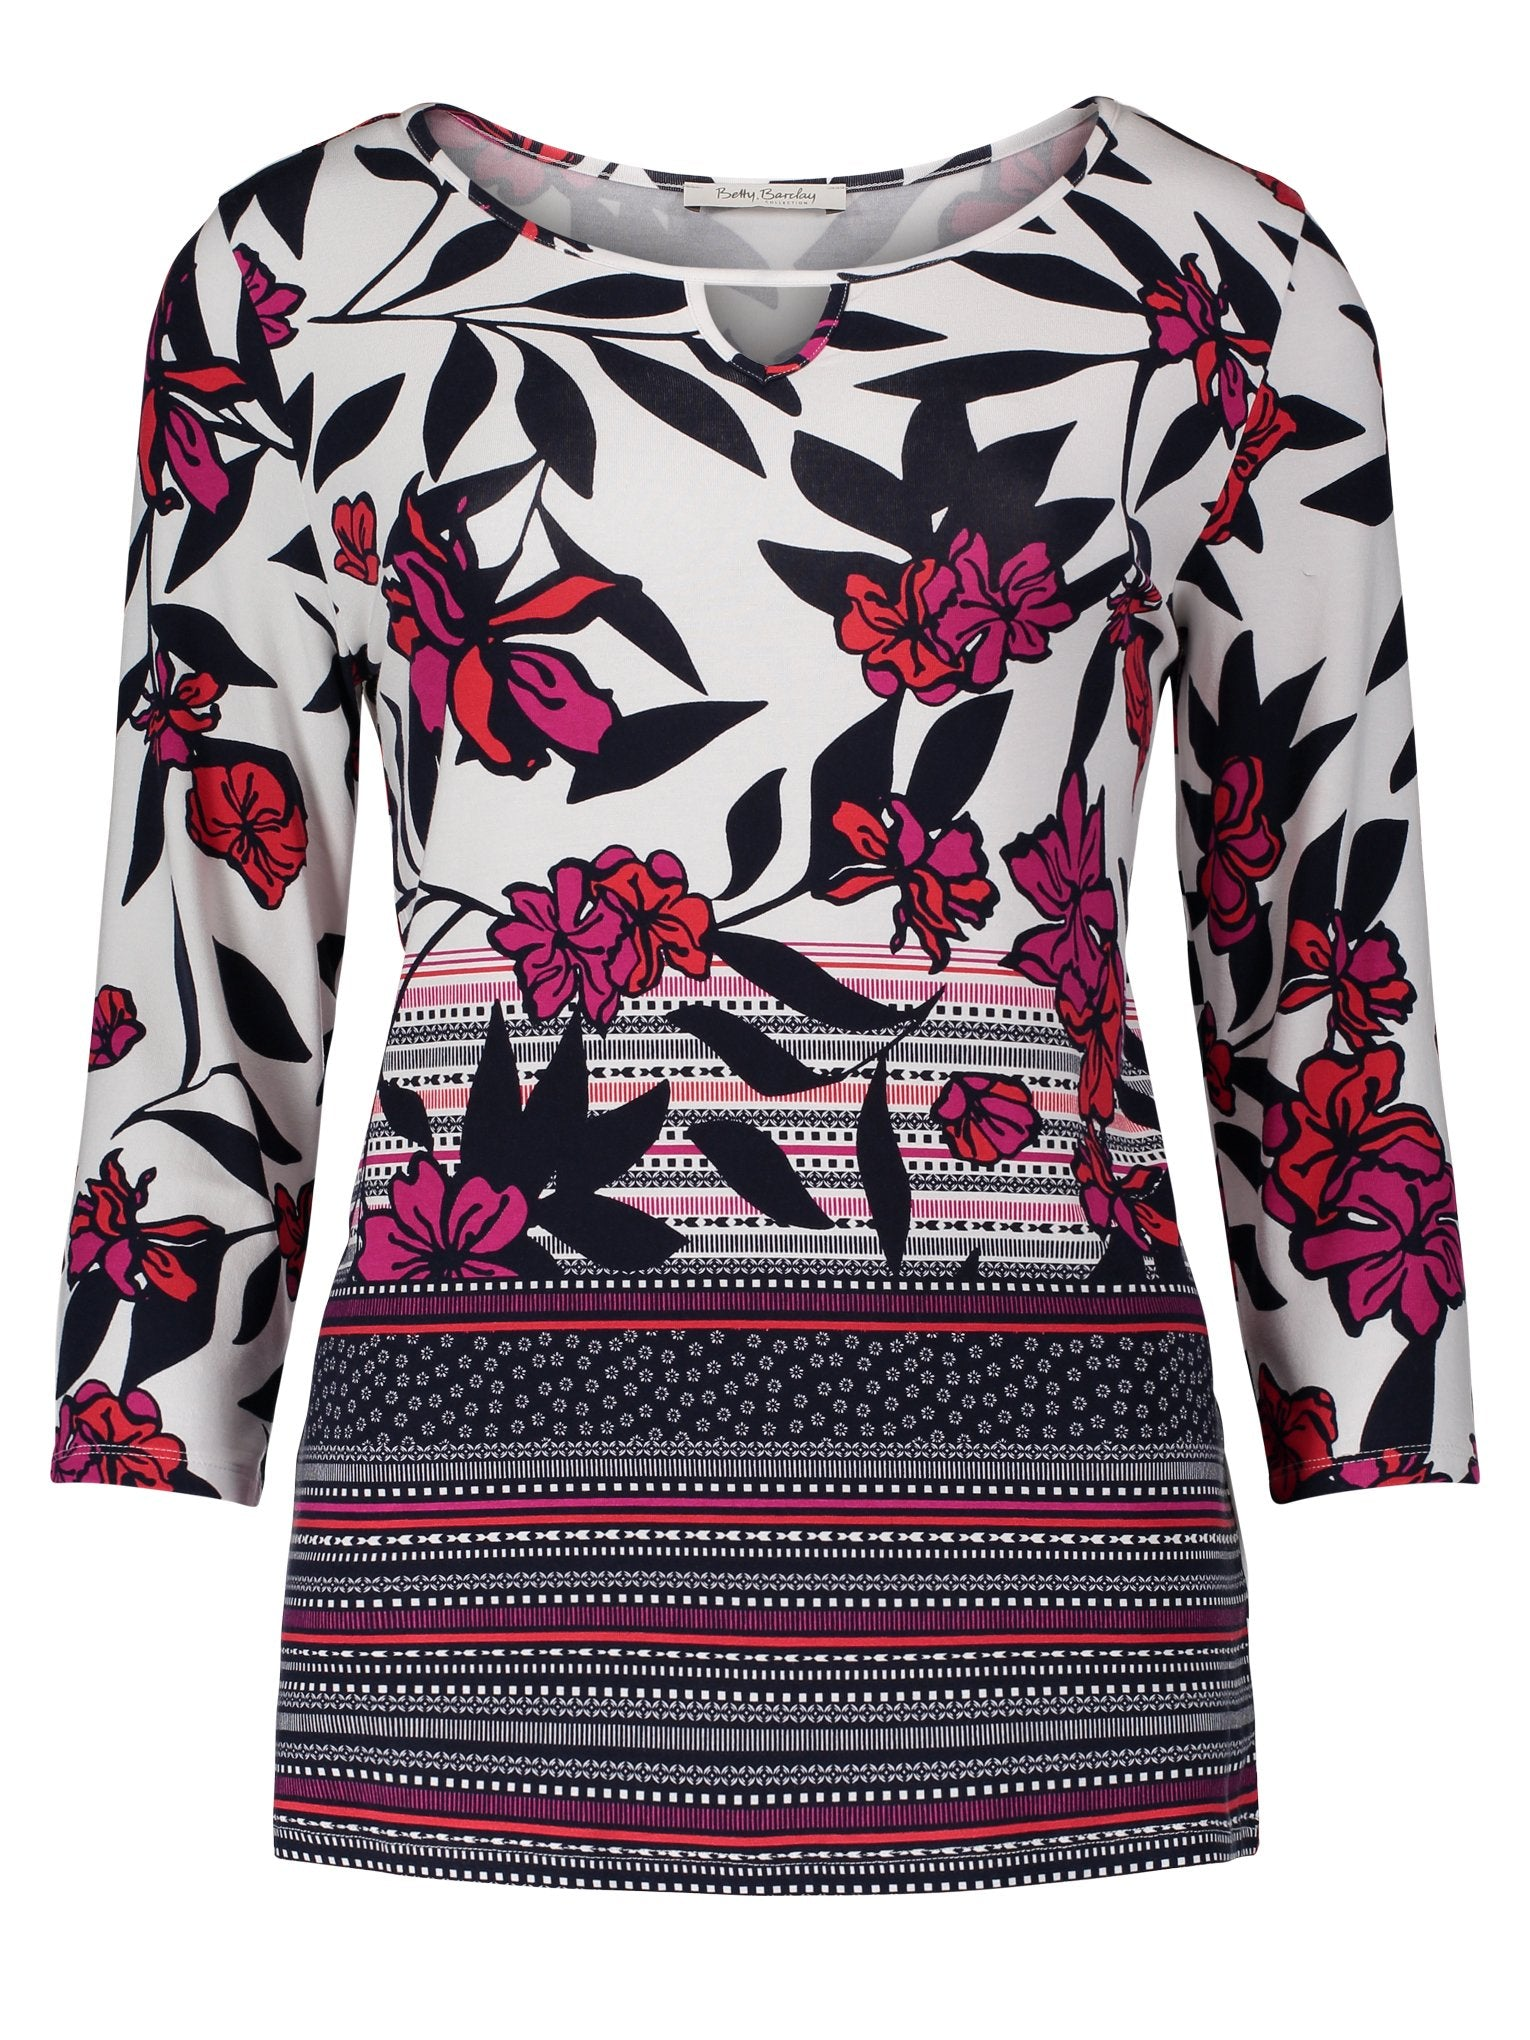 Betty Barclay Cream/Pink Floral & Leaf Print Jersey Top